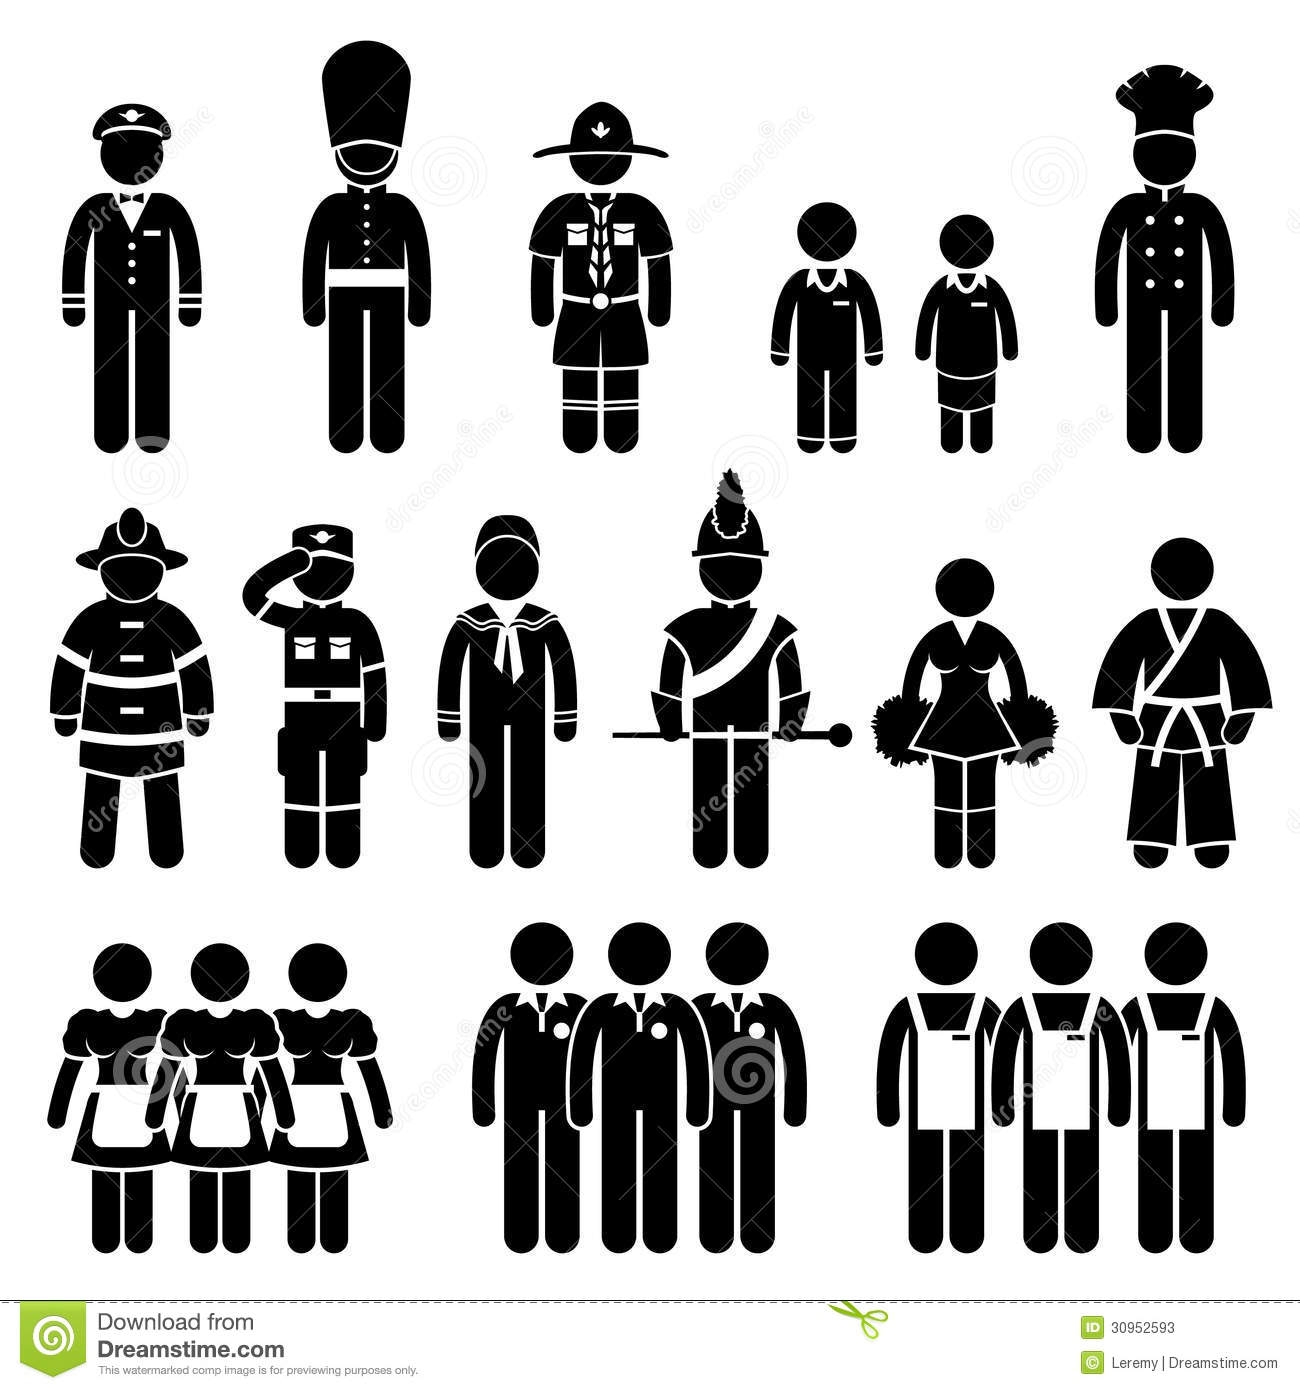 Uniform Outfit Clothing Wear Job Pictogram Stock Vector ...